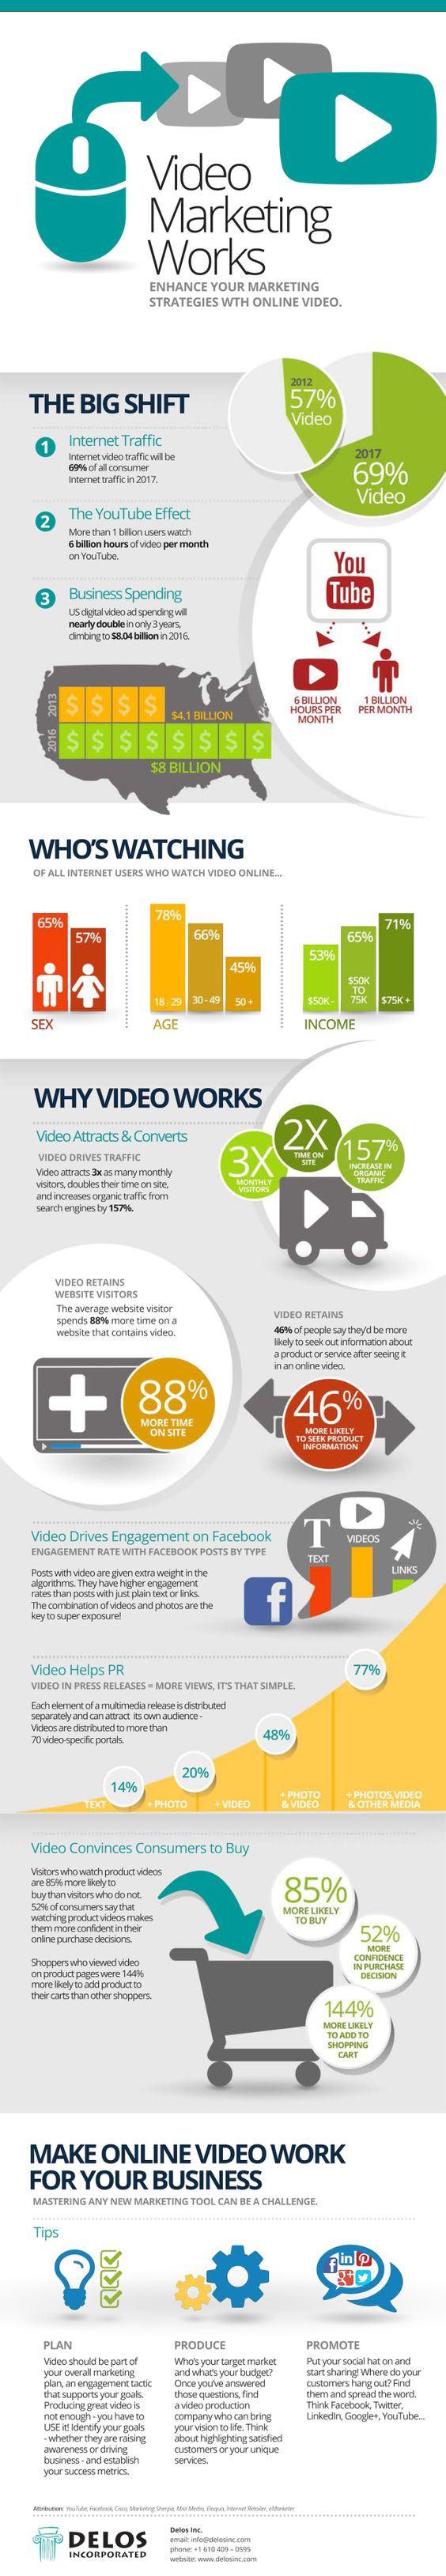 Video Marketing Works. Enhance your marketing strategies with online video. #infographic